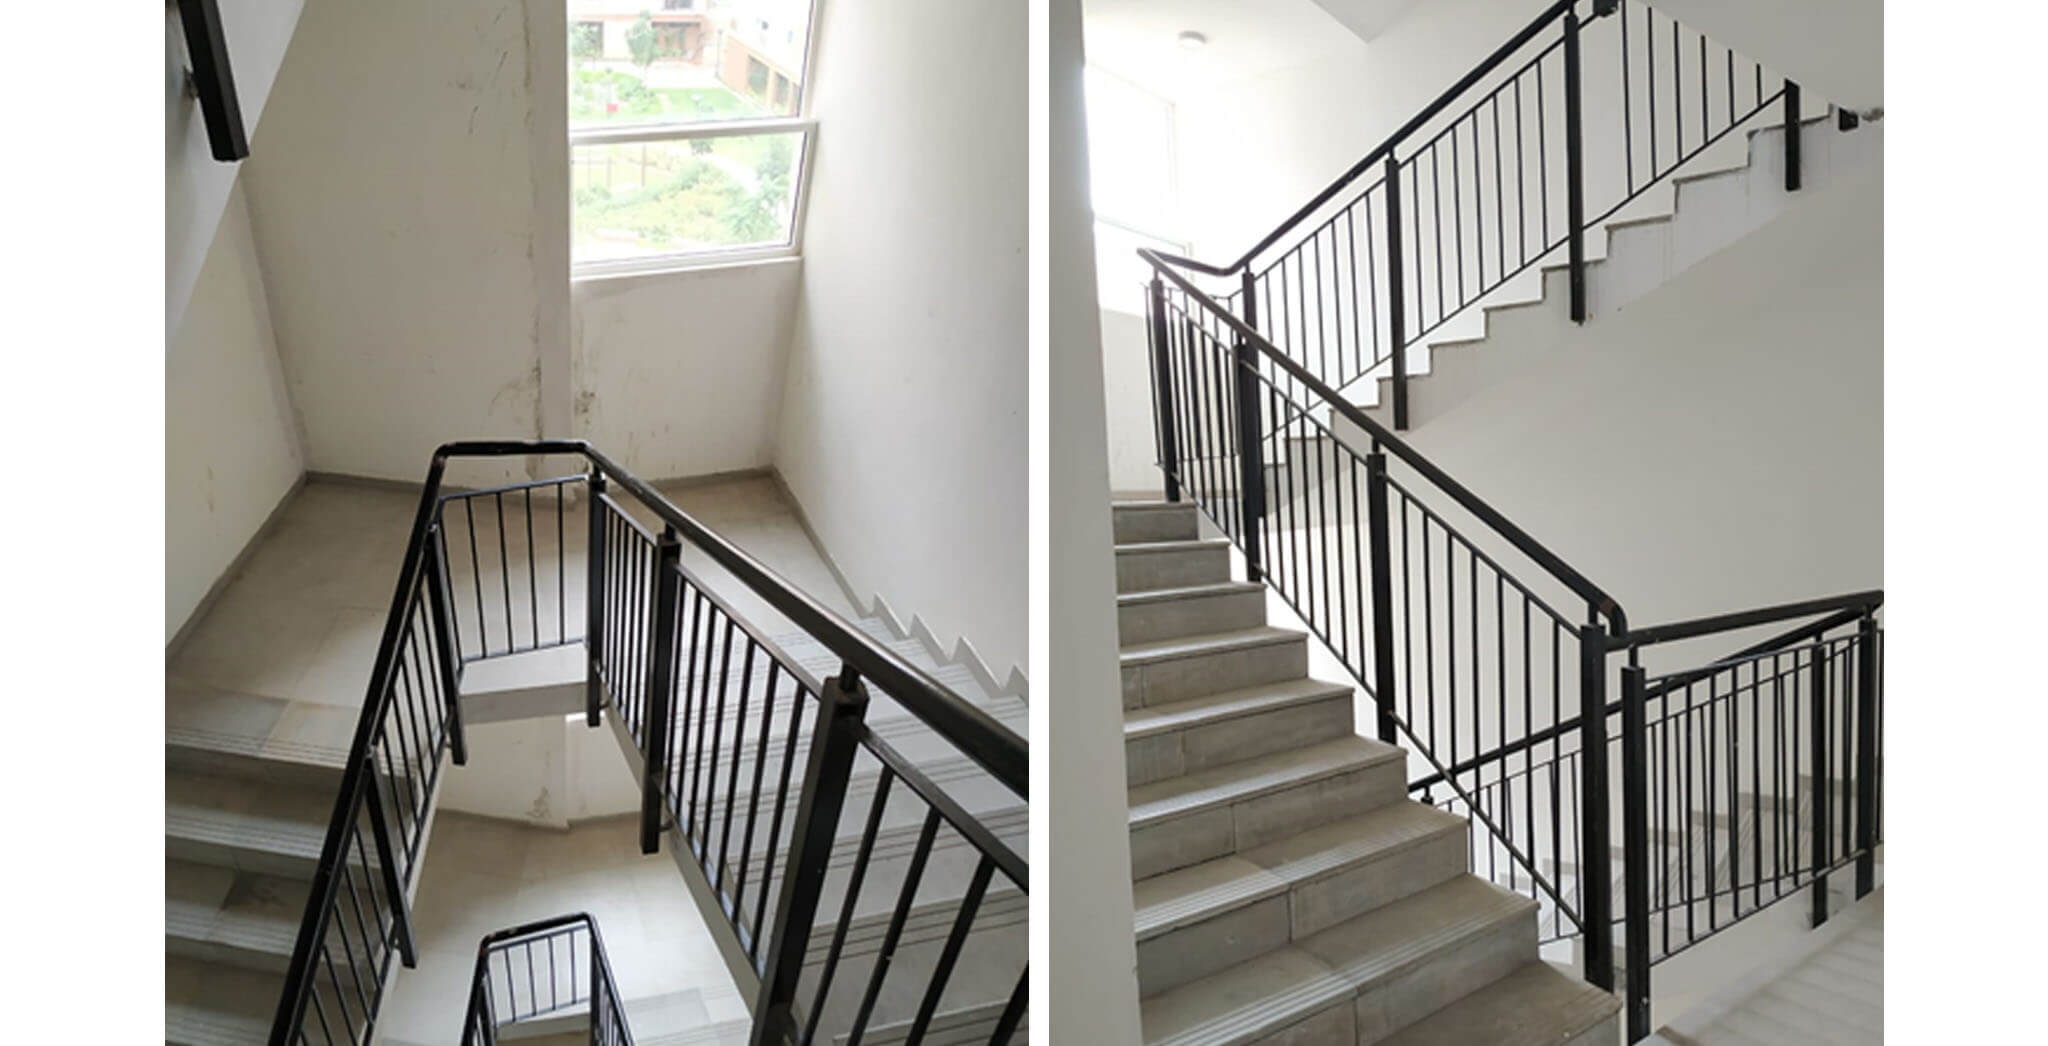 May 2020 - Deodar—F block: Staircase–Final coat painting in progress